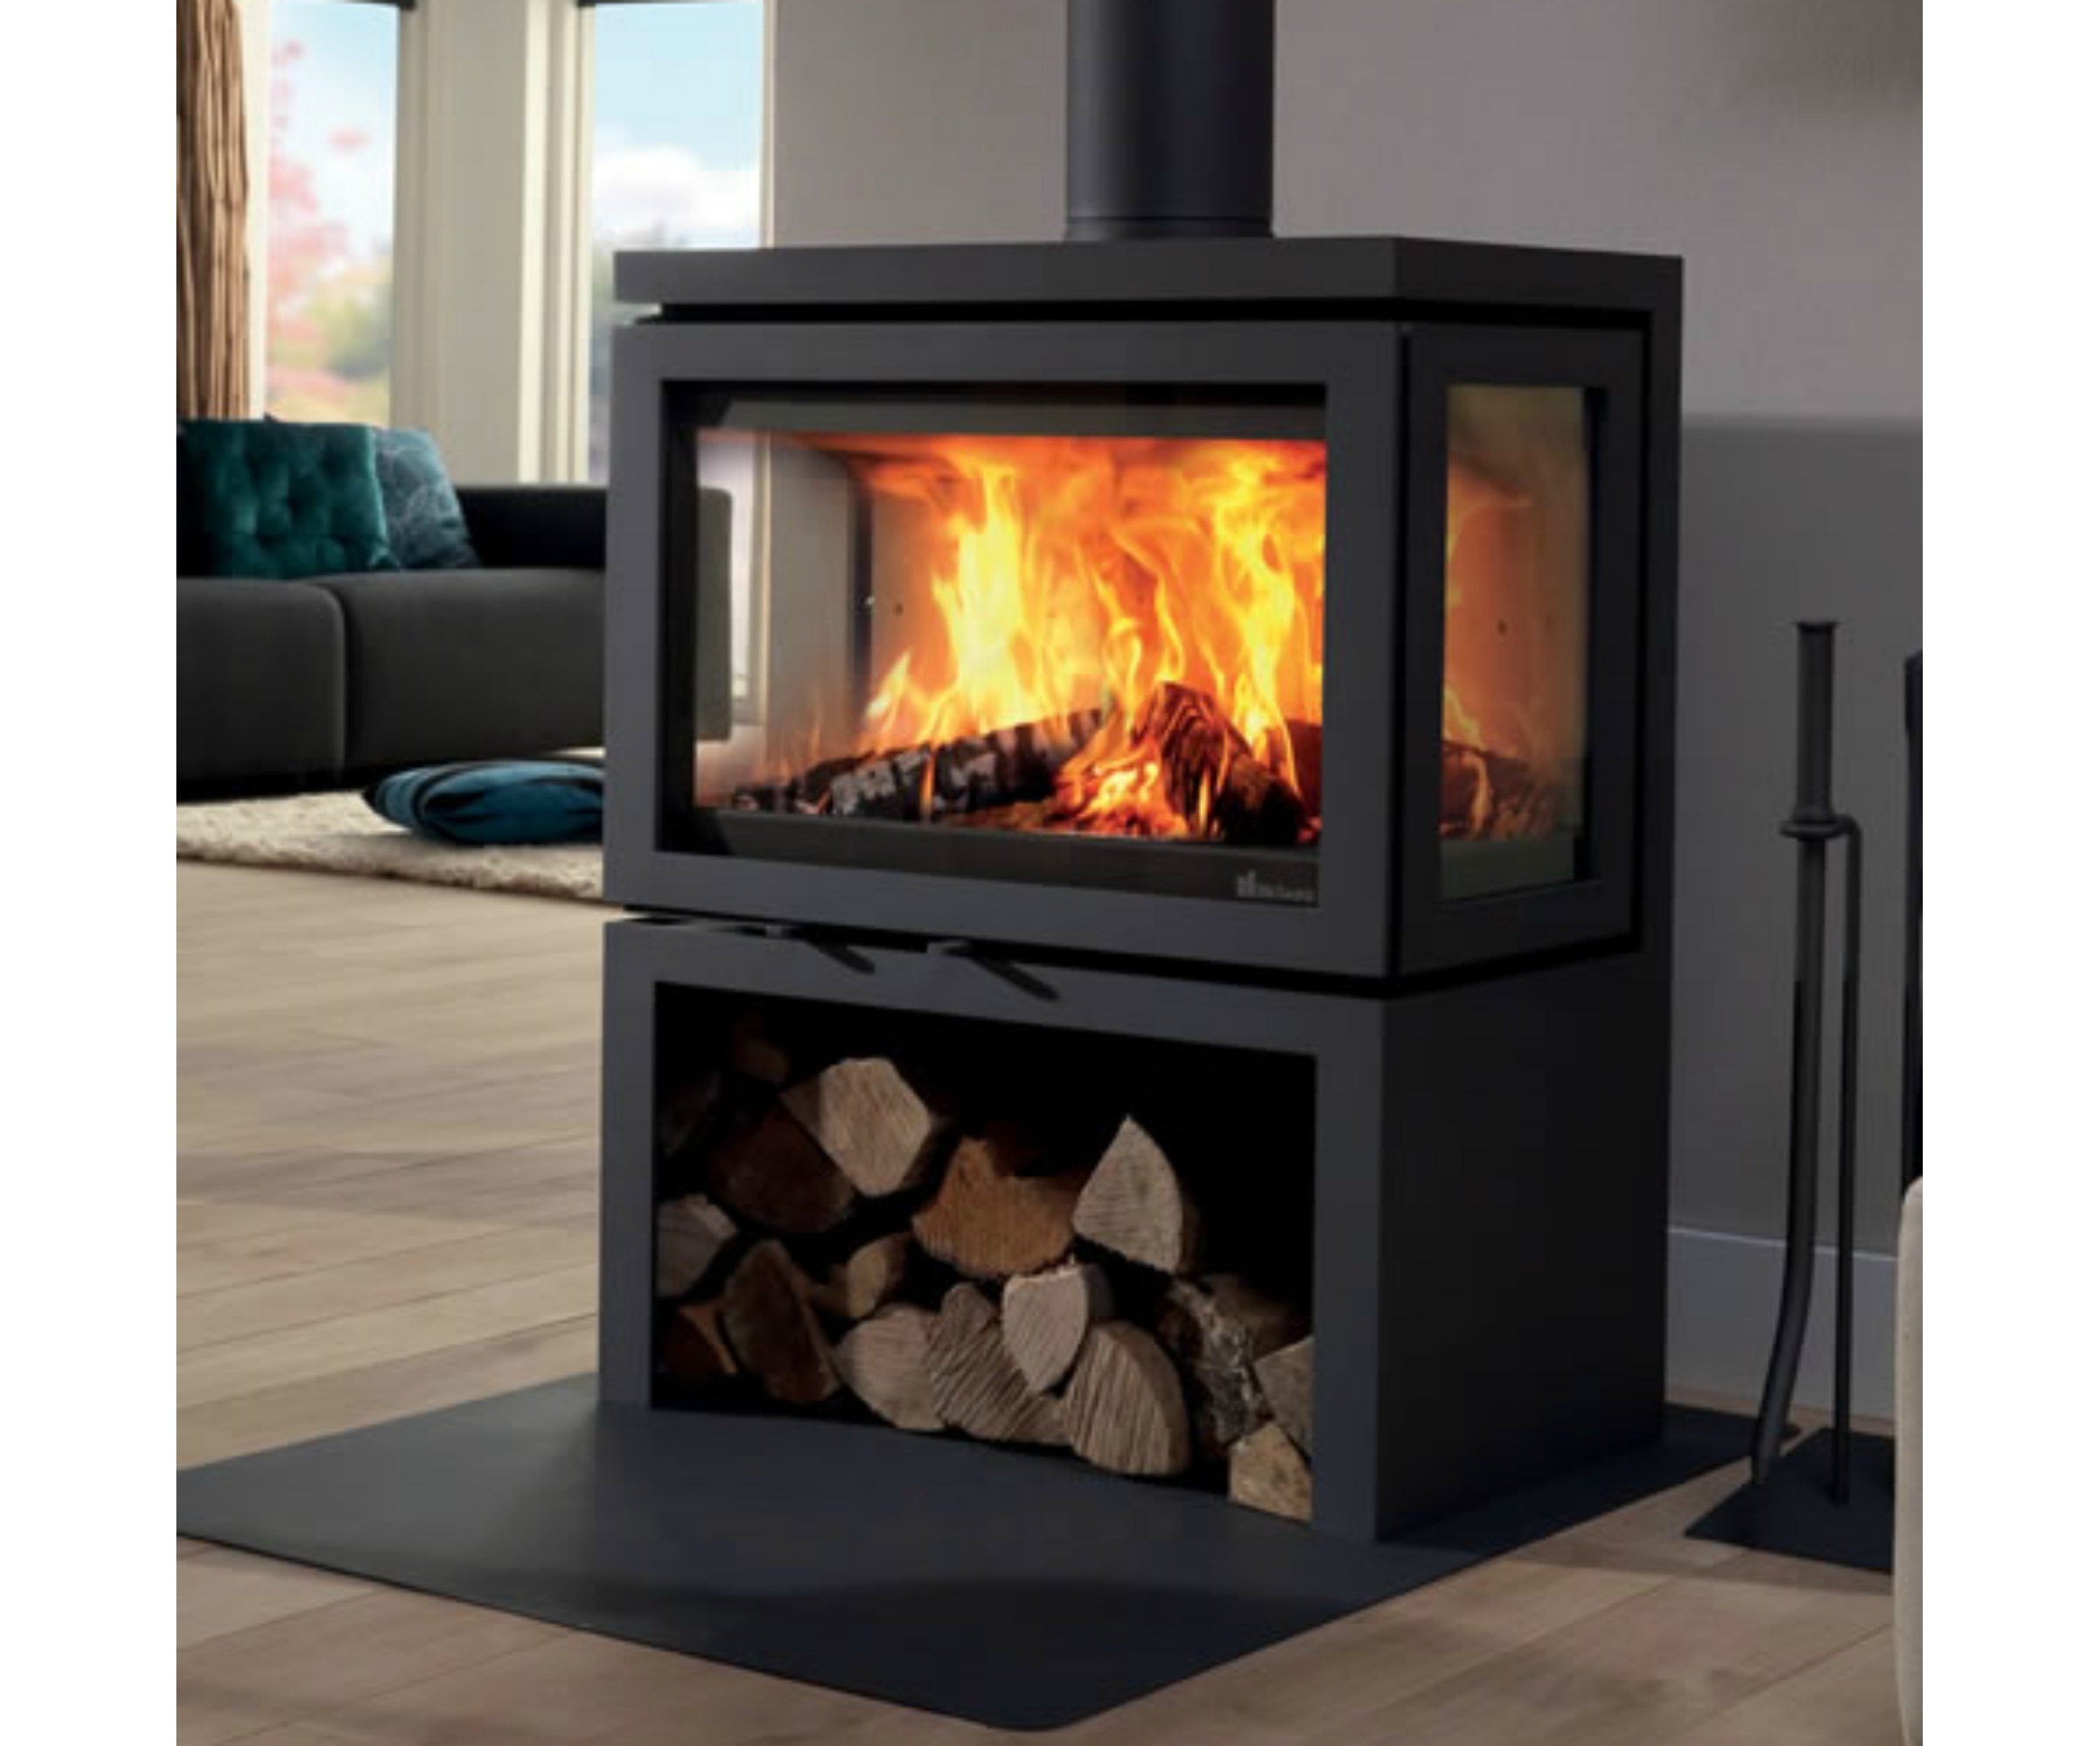 poele bois fonte. Black Bedroom Furniture Sets. Home Design Ideas